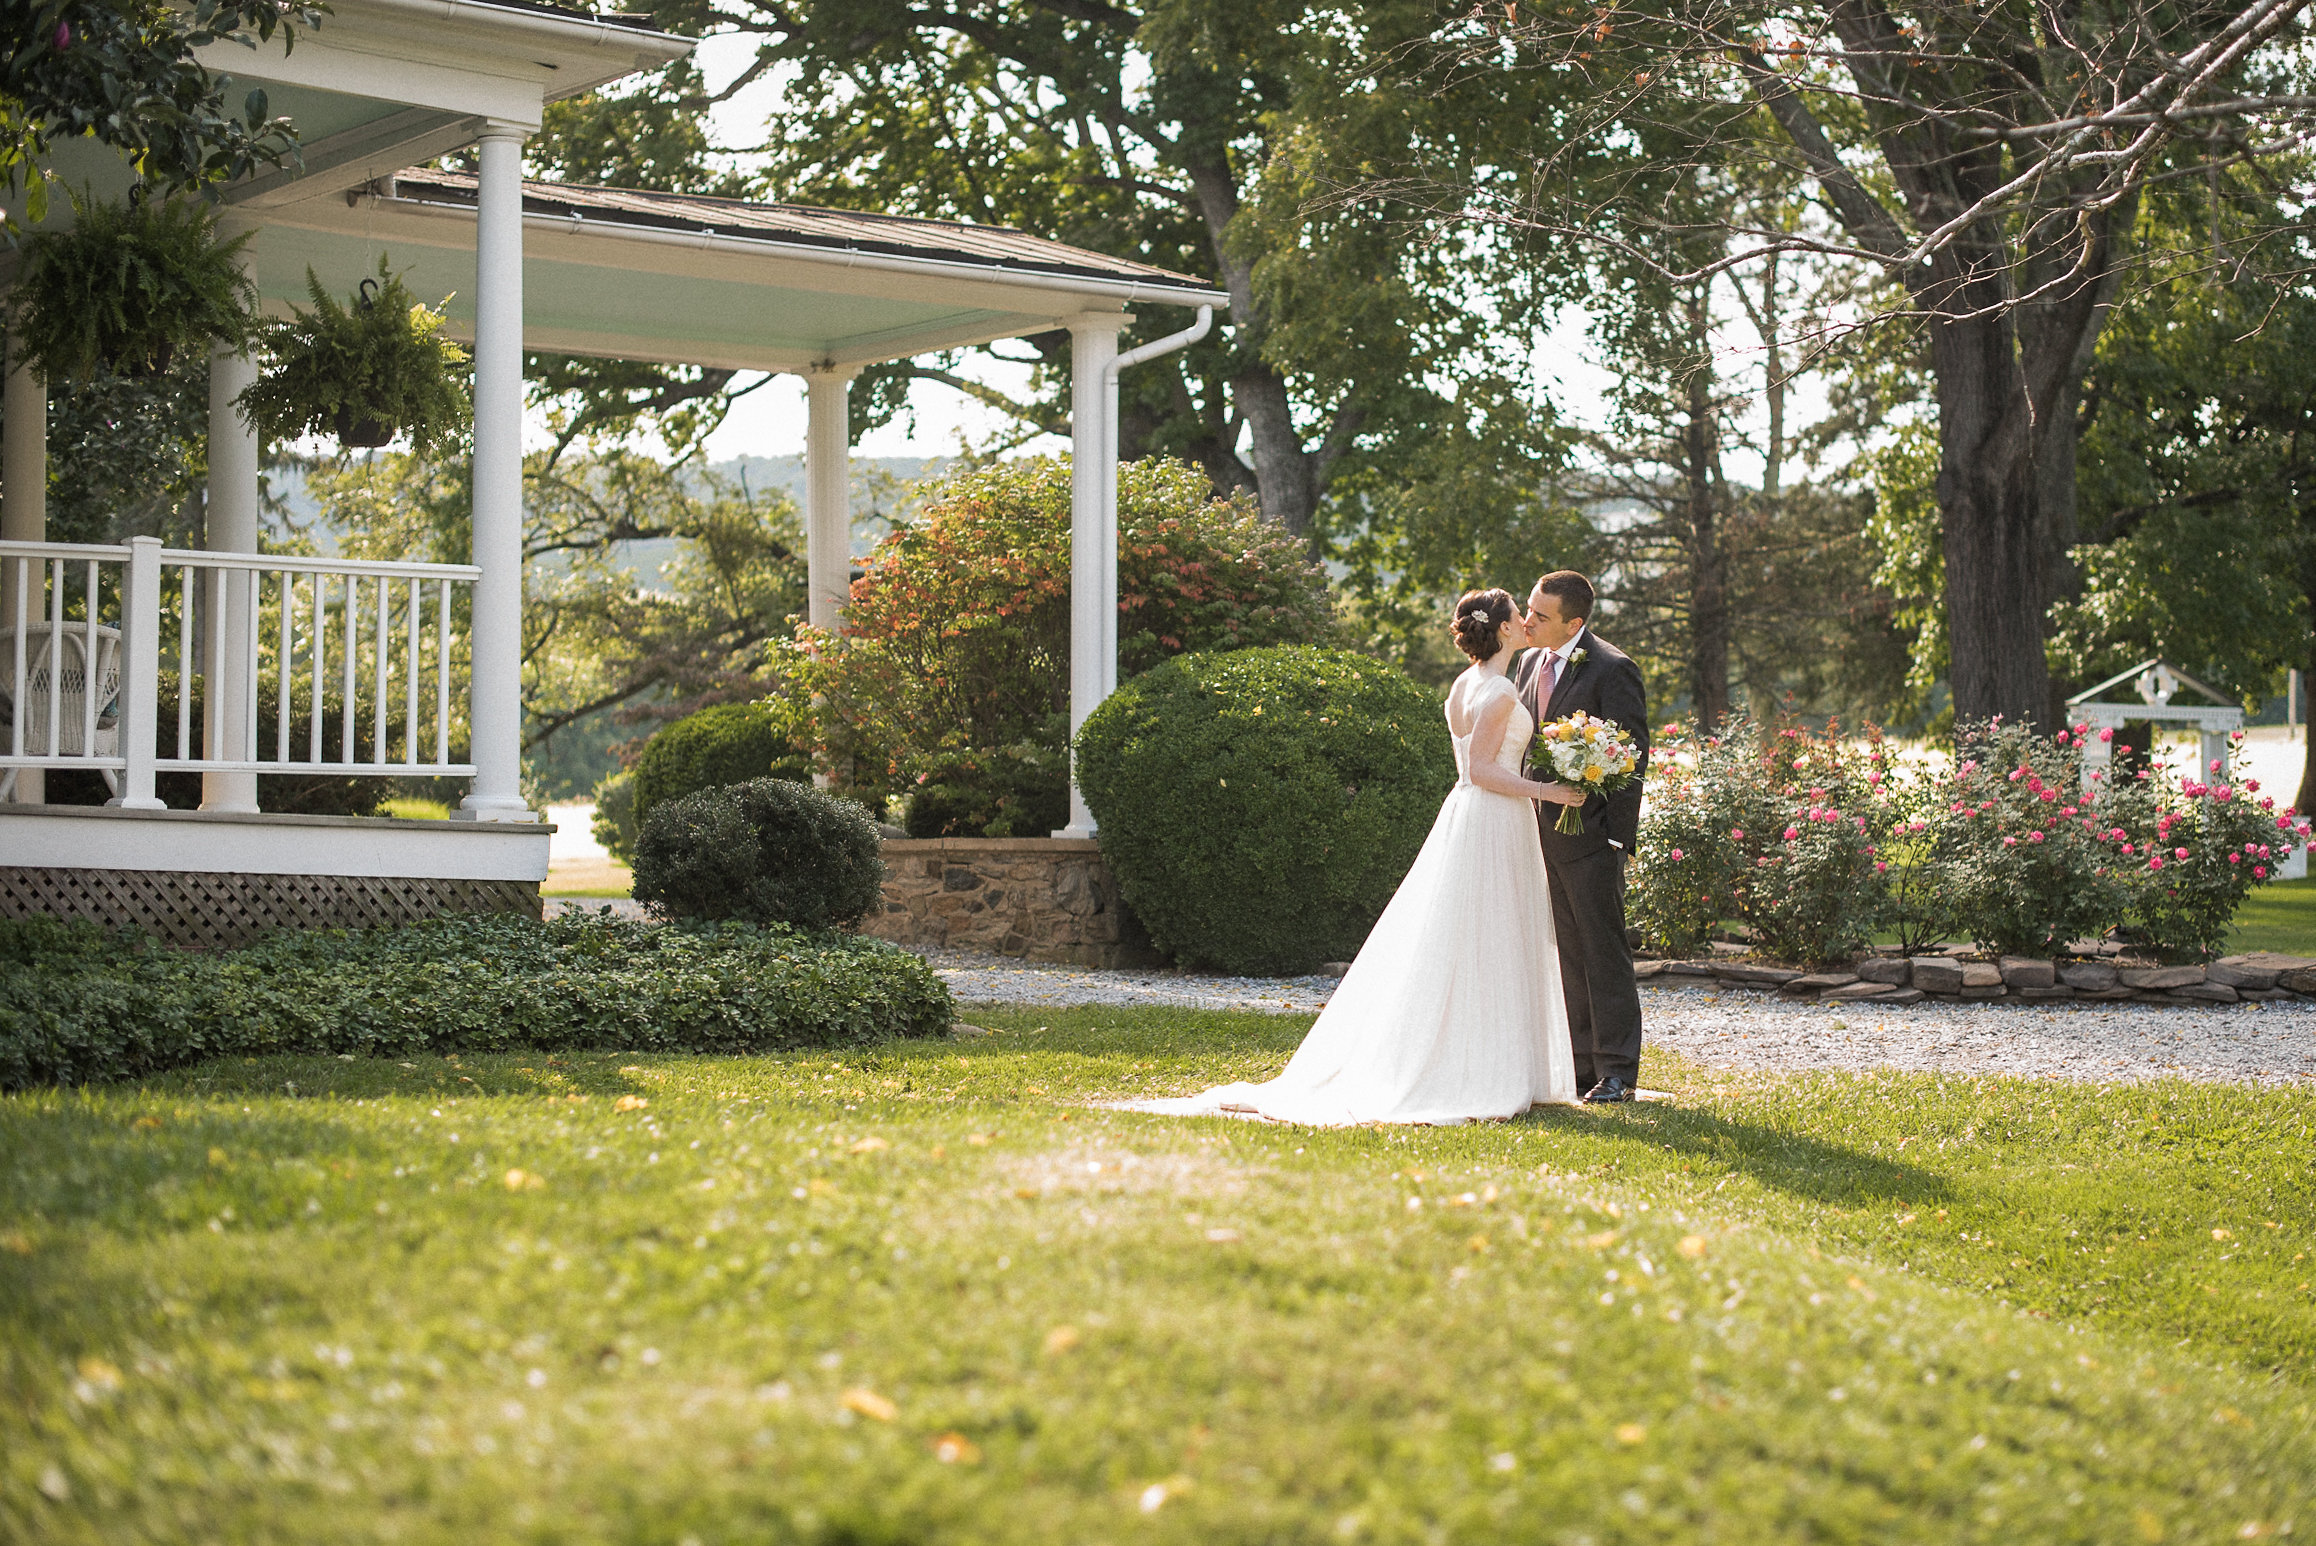 Bride and groom kissing on front lawn